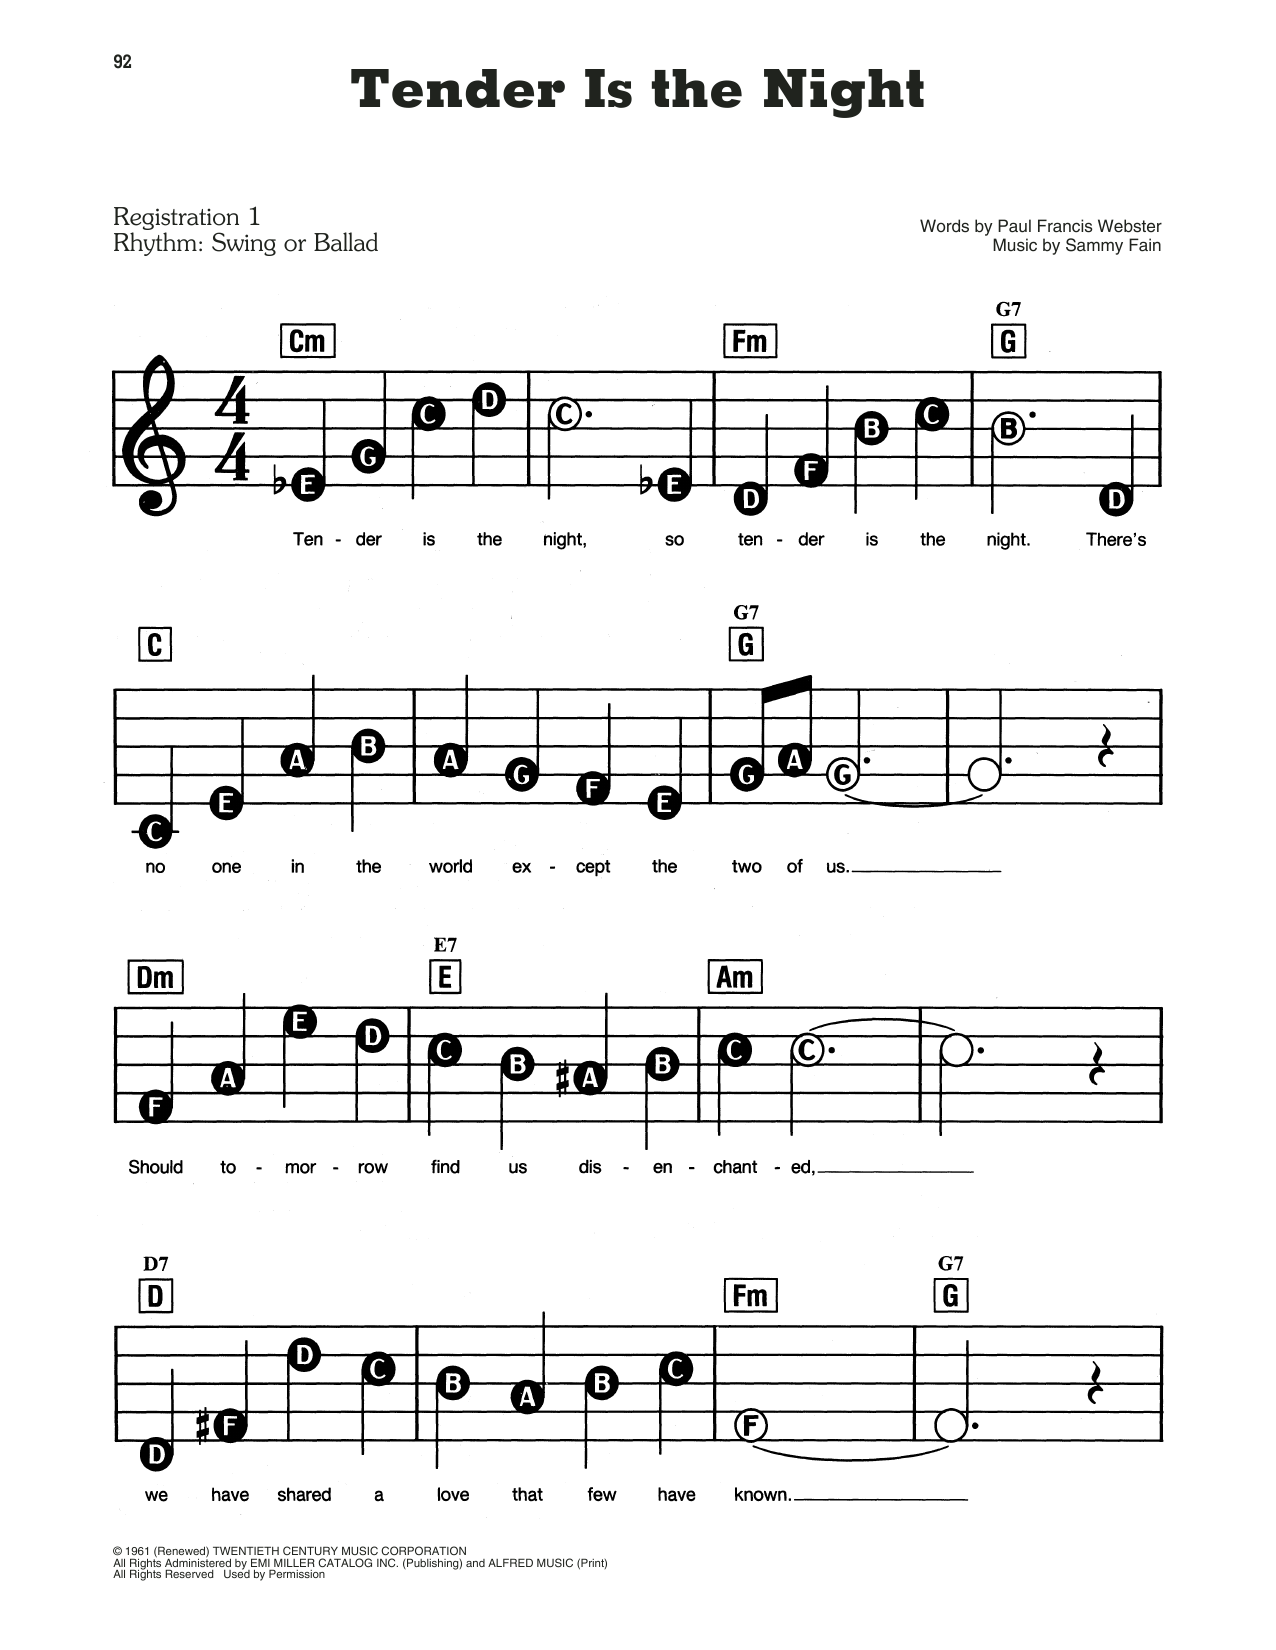 Paul Francis Webster and Sammy Fain Tender Is The Night sheet music notes and chords. Download Printable PDF.